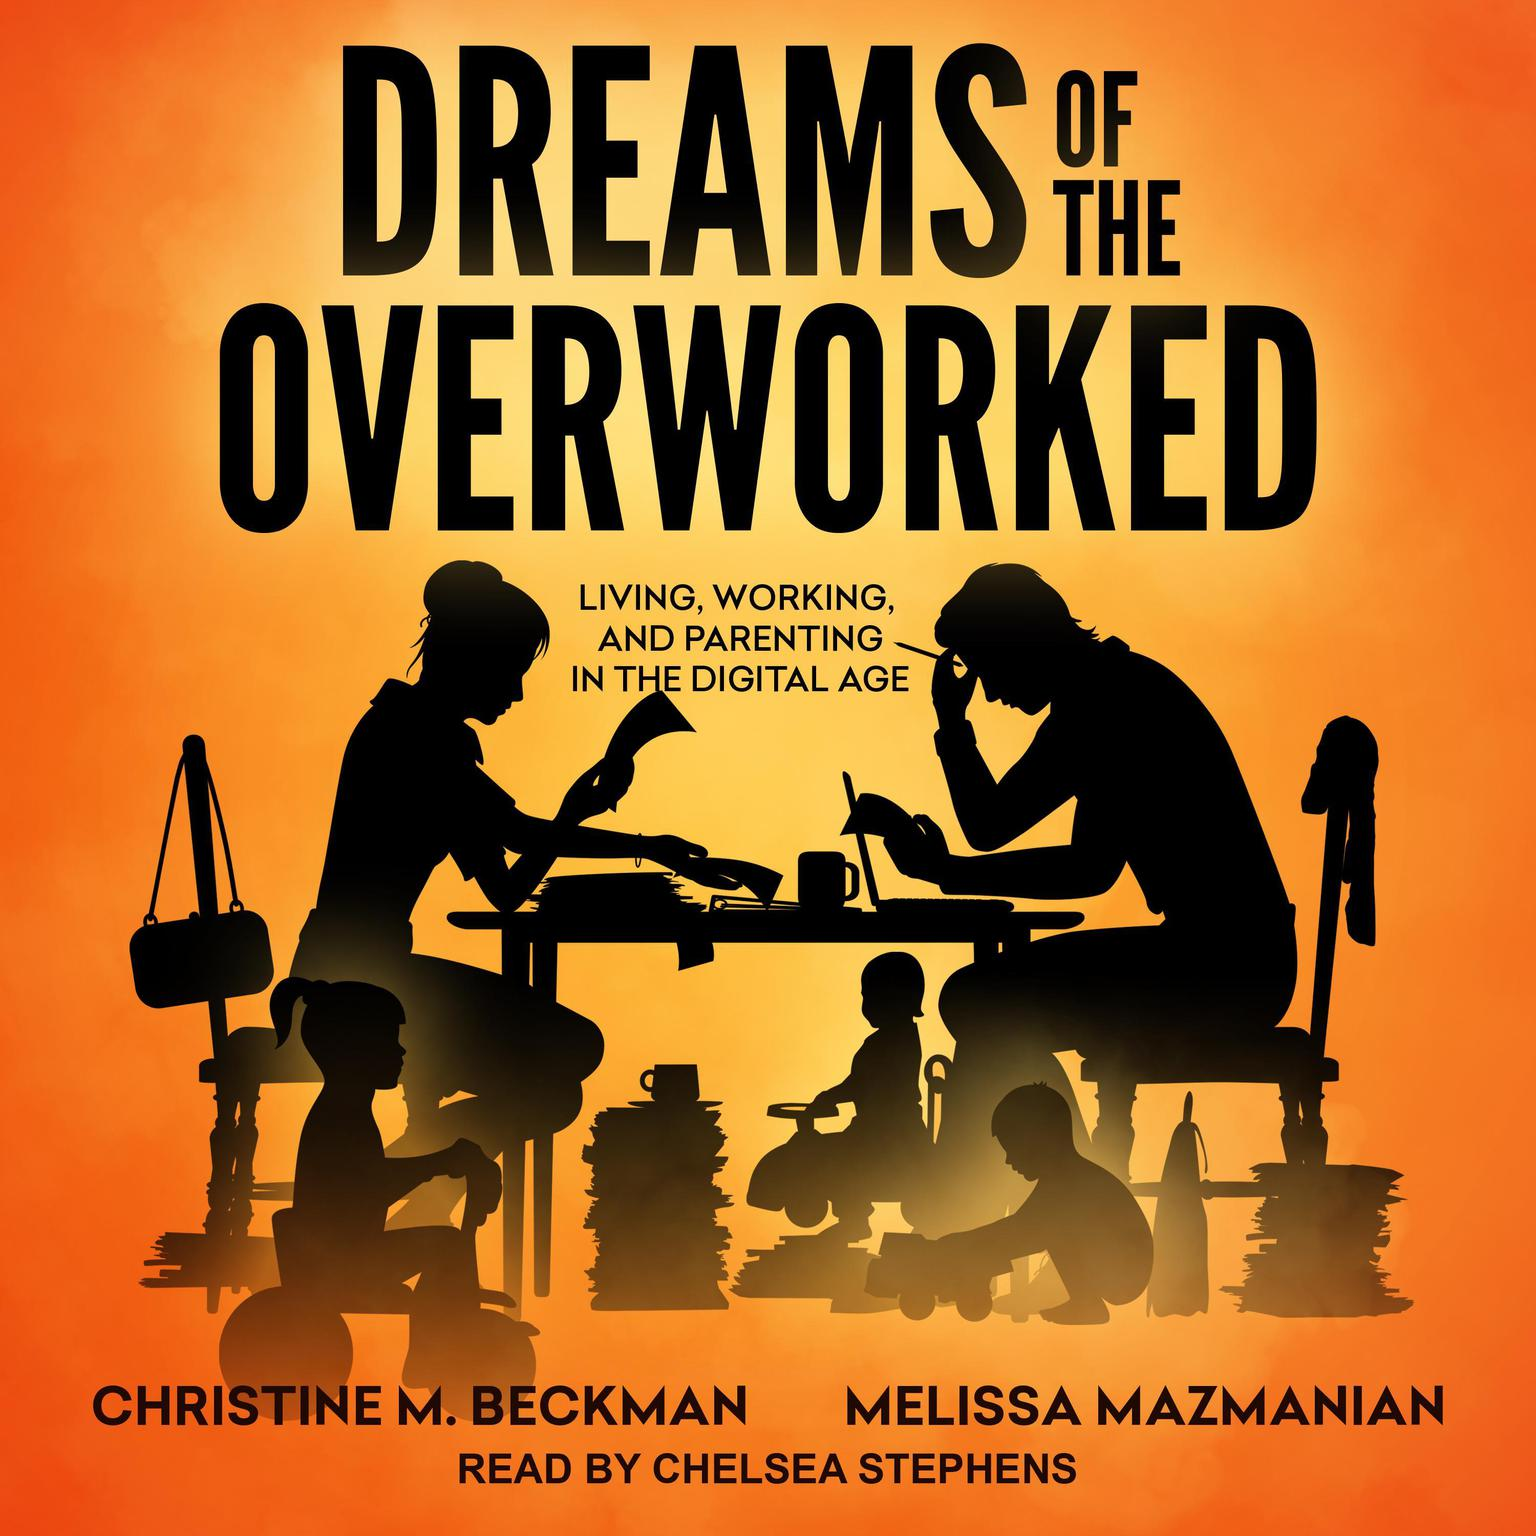 Dreams of the Overworked: Living, Working, and Parenting in the Digital Age Audiobook, by Christine M. Beckman